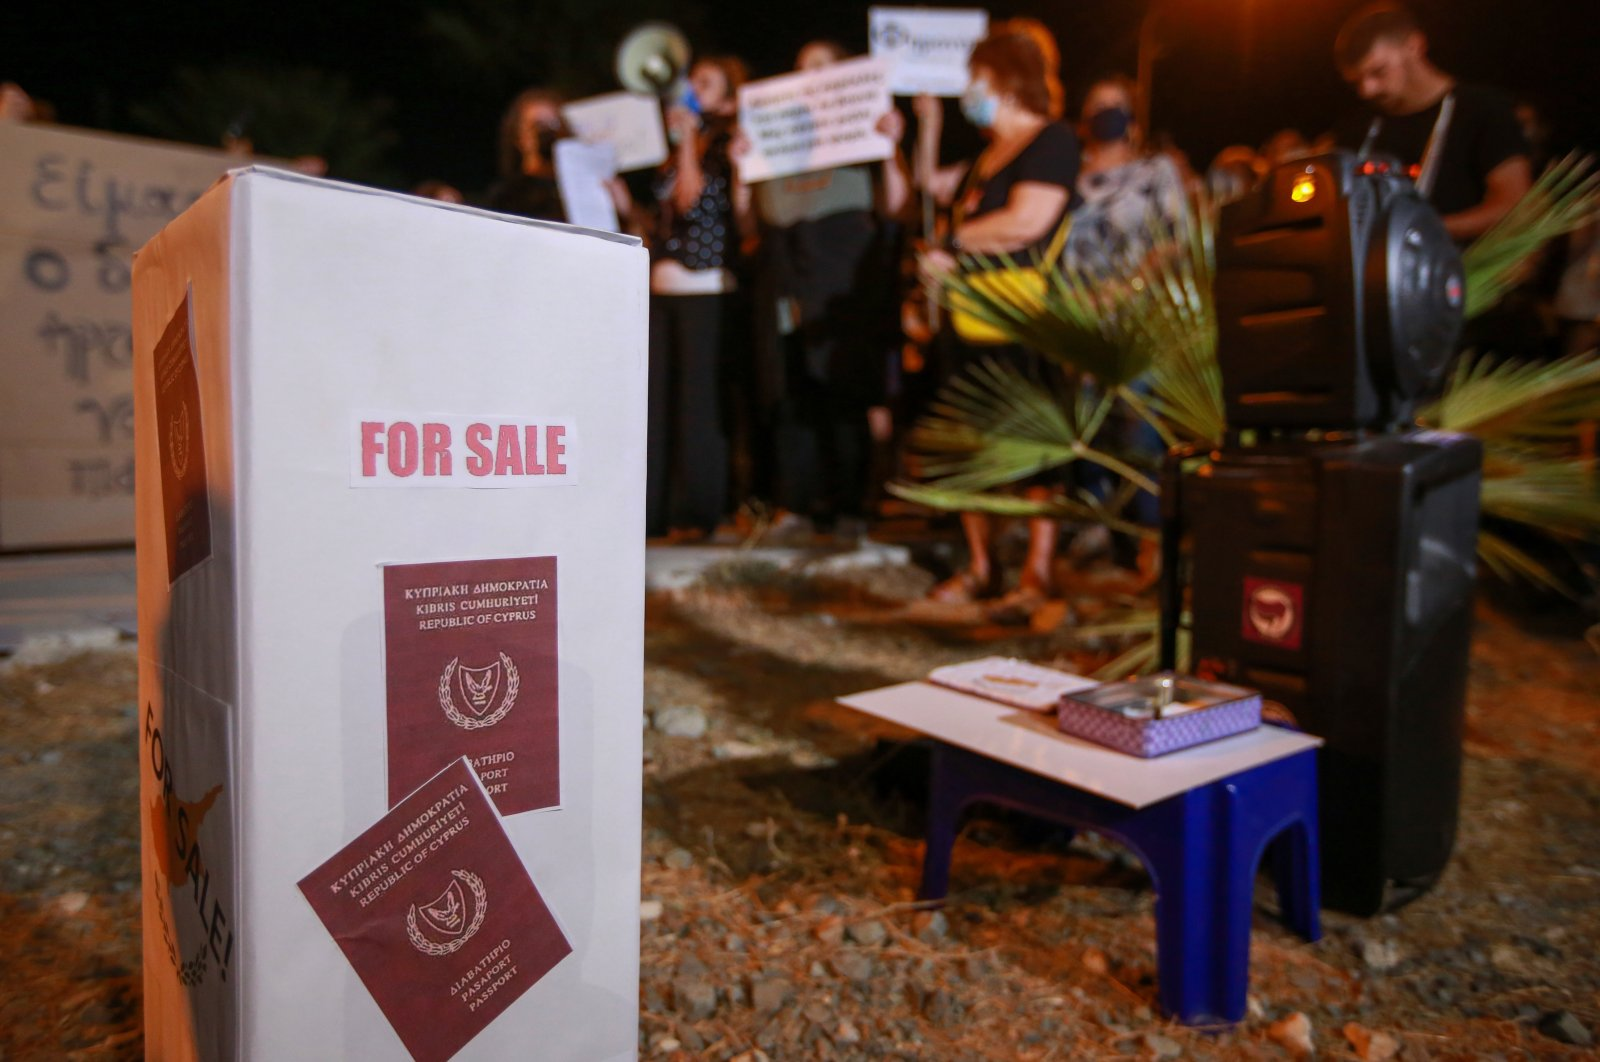 Mock passports for sale stand are seen during an anti-corruption protest in Nicosia, Greek Cyprus, Oct. 14, 2020. (Getty Images)